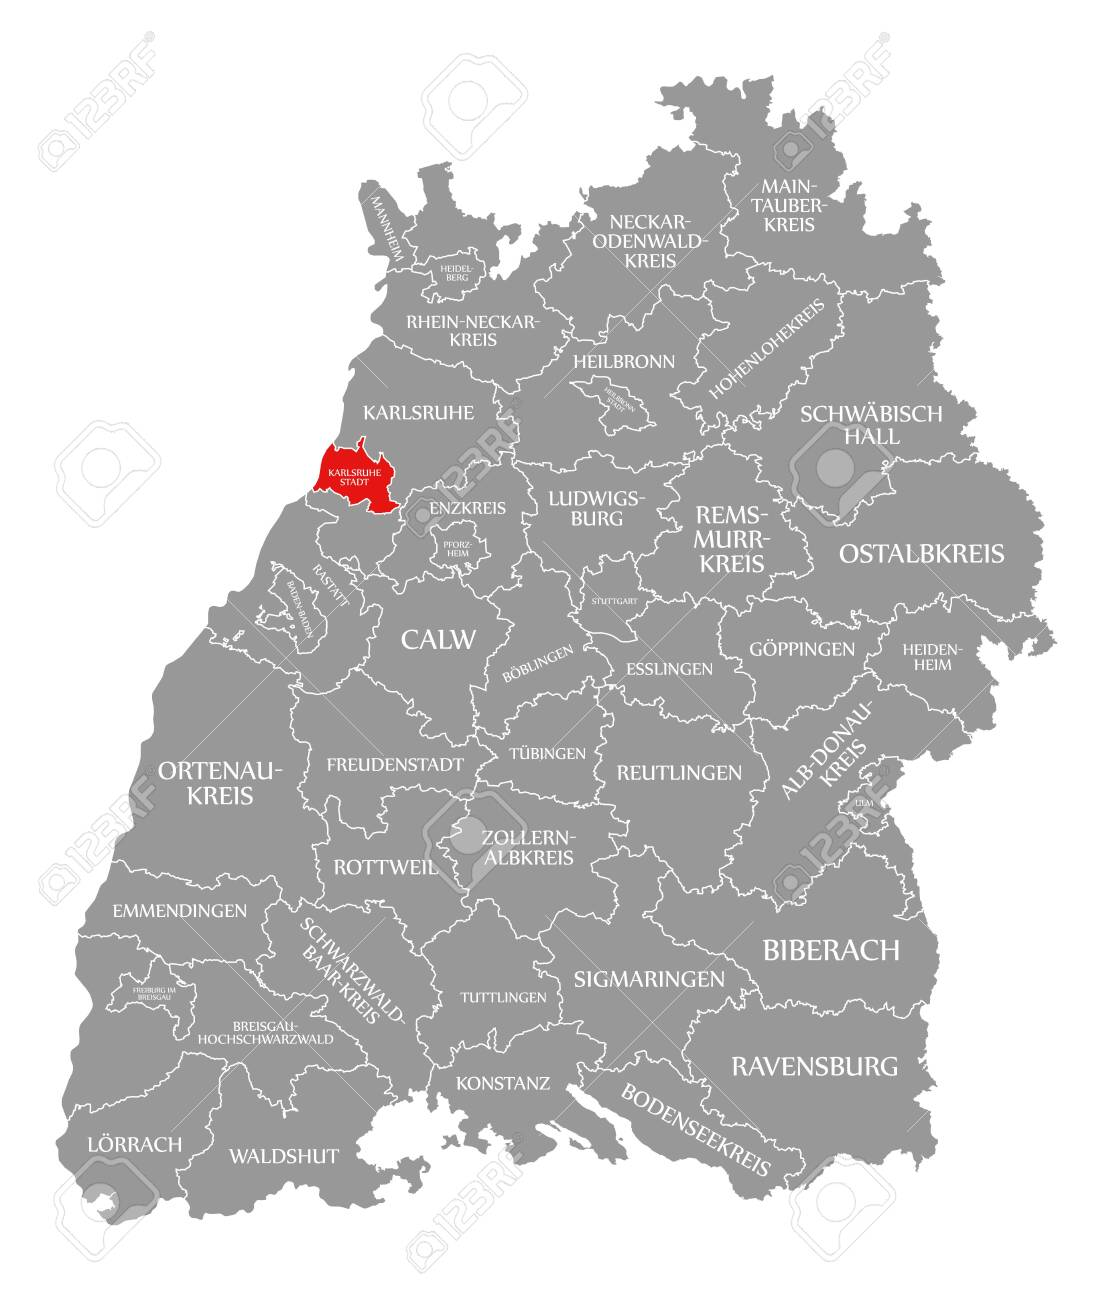 Karlsruhe Map Of Germany.Karlsruhe City County Red Highlighted In Map Of Baden Wuerttemberg